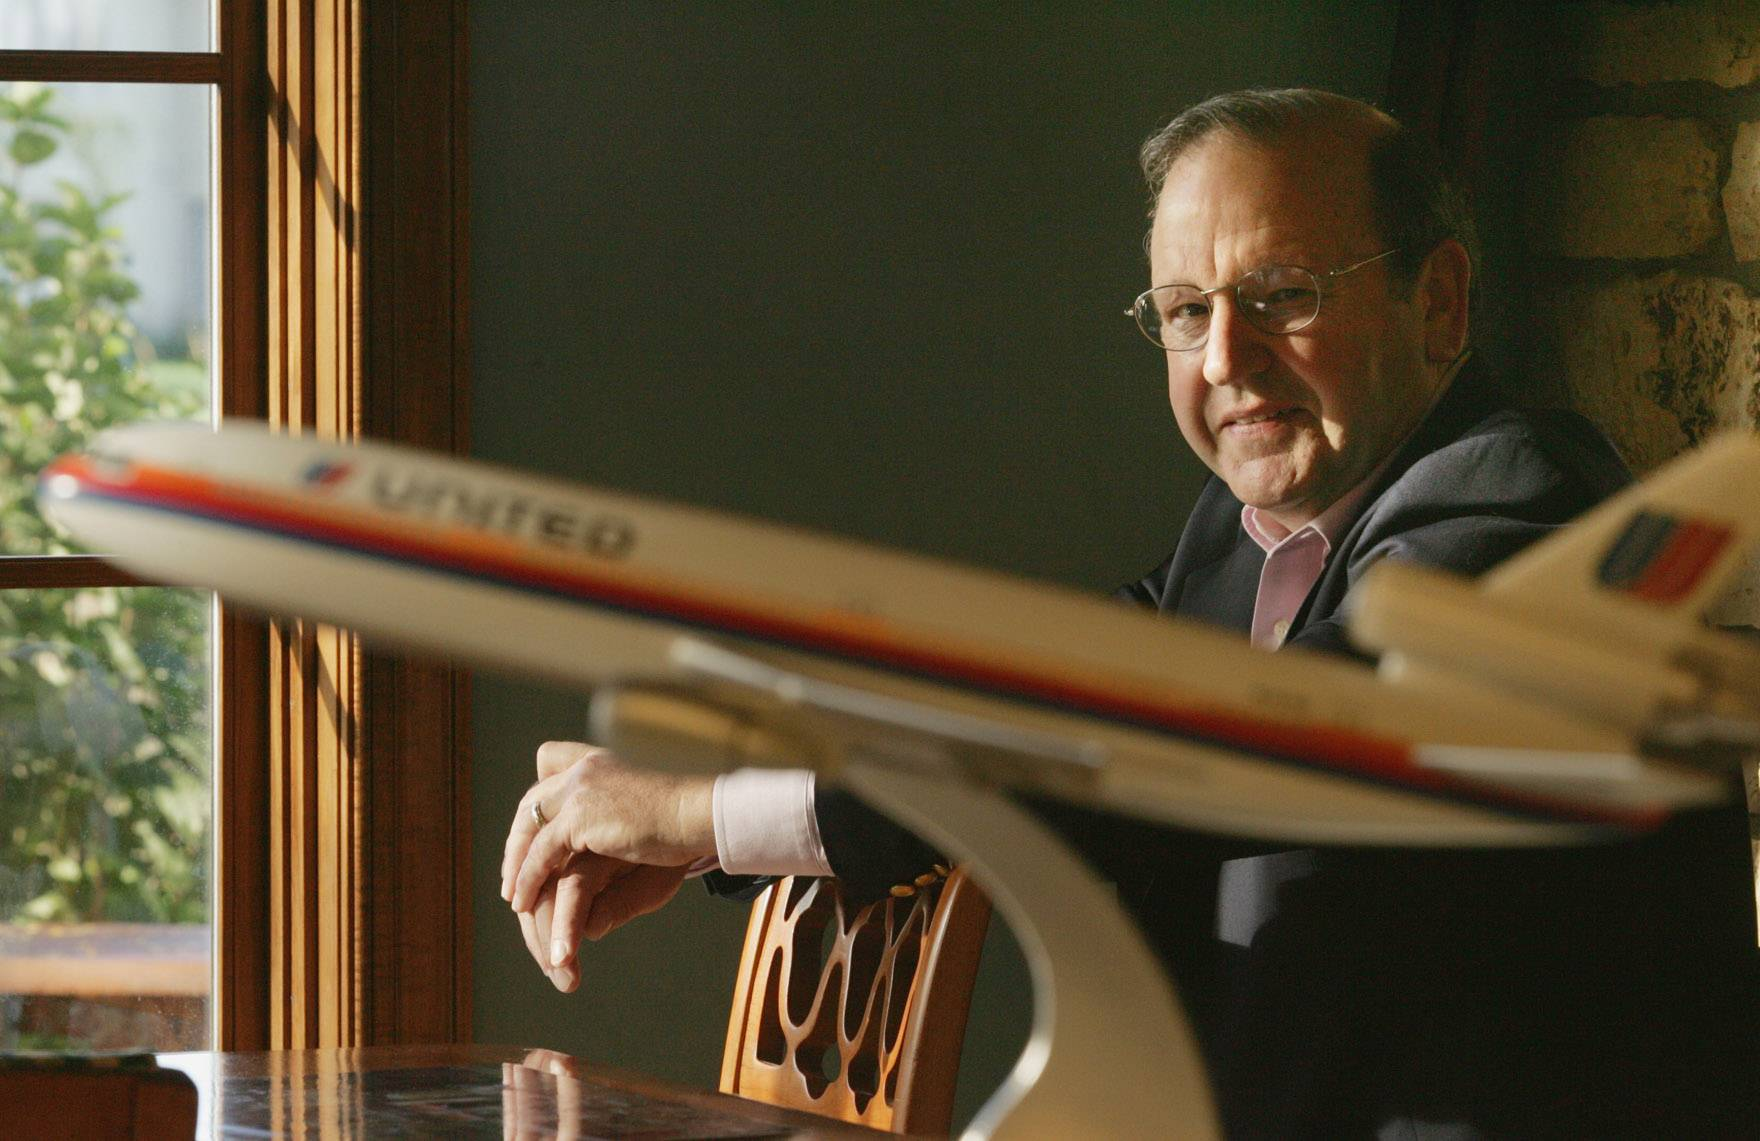 Denny Fitch, retired United Airlines pilot of St. Charles who survived the crash of a DC-10 in Iowa and whose actions controlling the airplane are credited with saving lives.  Fitch died in 2012.